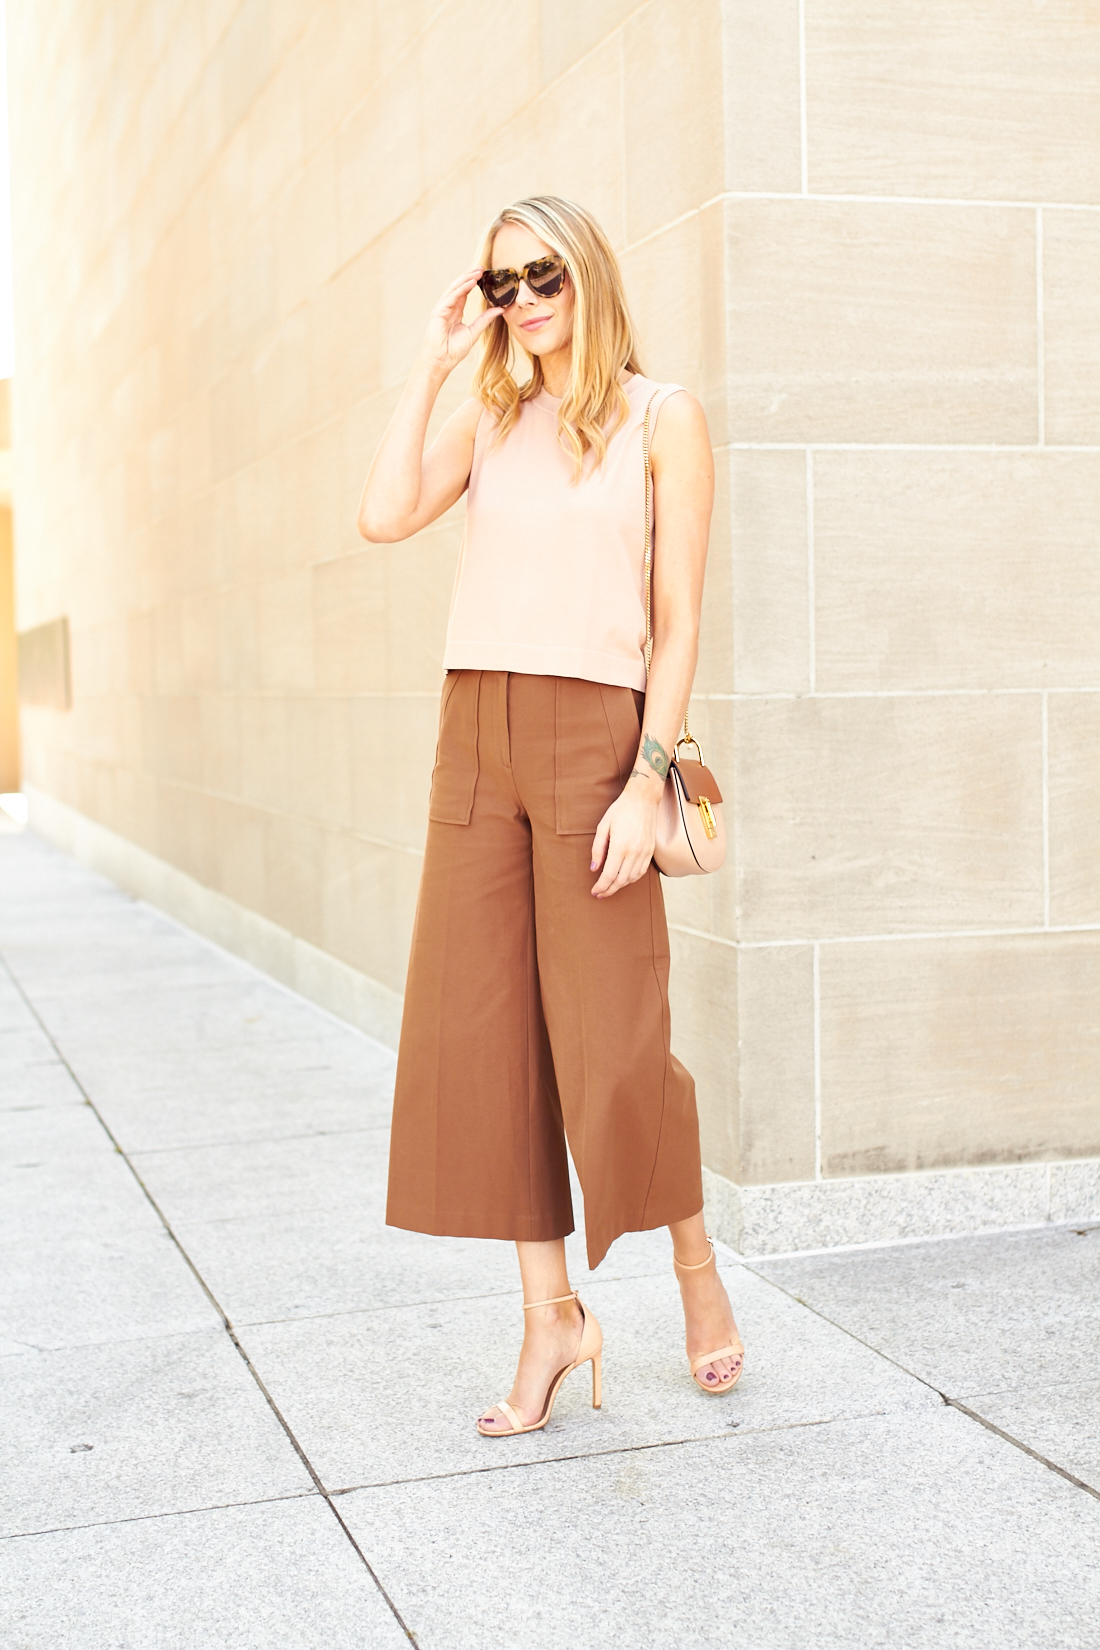 fashion-jackson-blush-shell-sweater-ann-taylor-wide-leg-ankle-pants-nude-ankle-strap-sandals